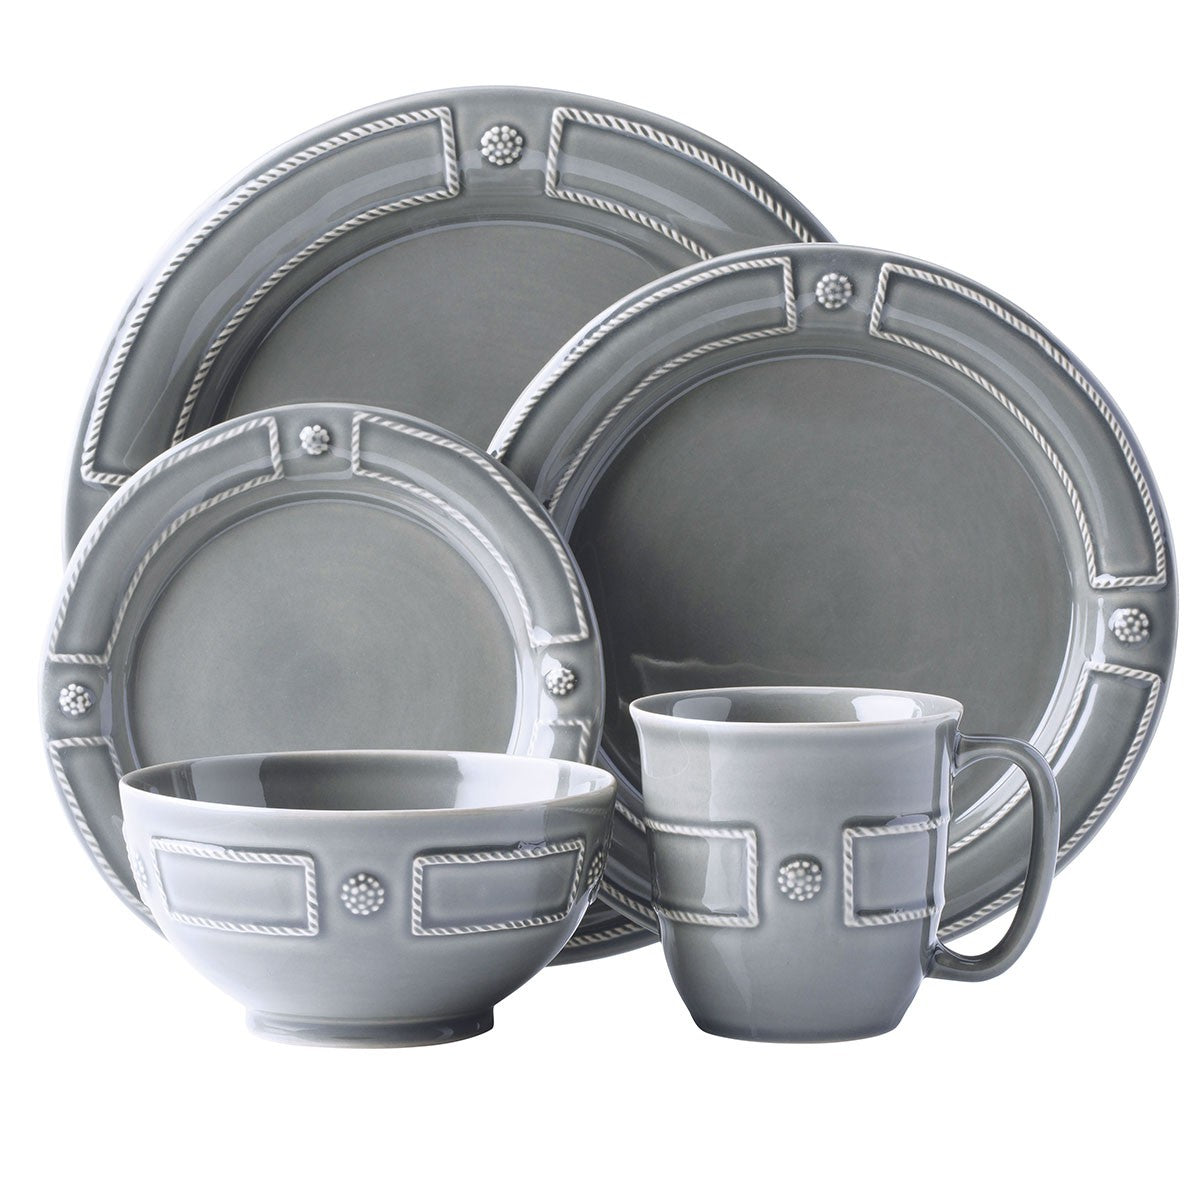 B & T French Panel Stone Grey Dinnerware